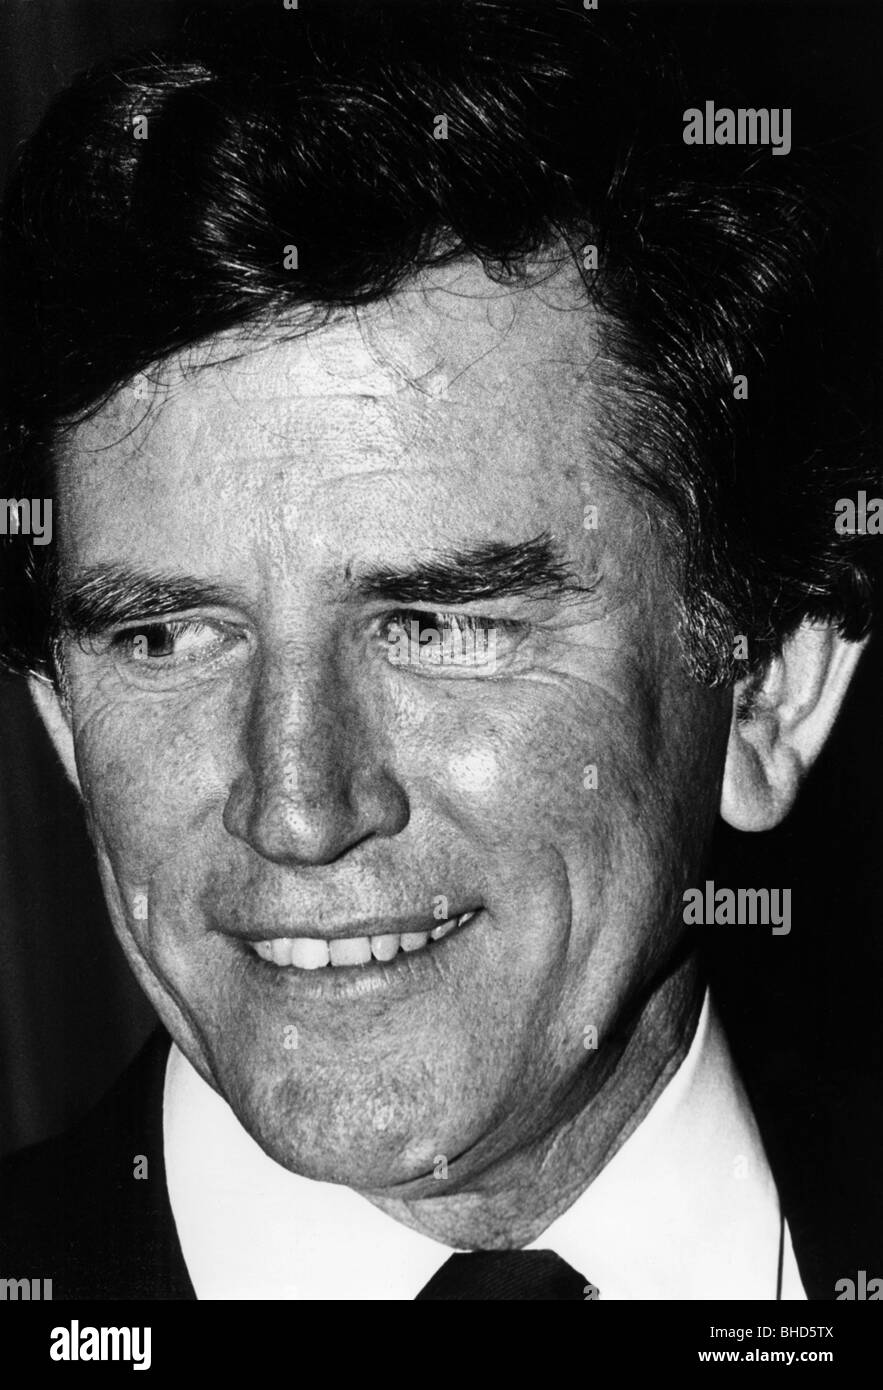 Hart, Gary (Colorado), US politician (Democrats), former presidential candidate (against Walter Mondale), portrait, - Stock Image